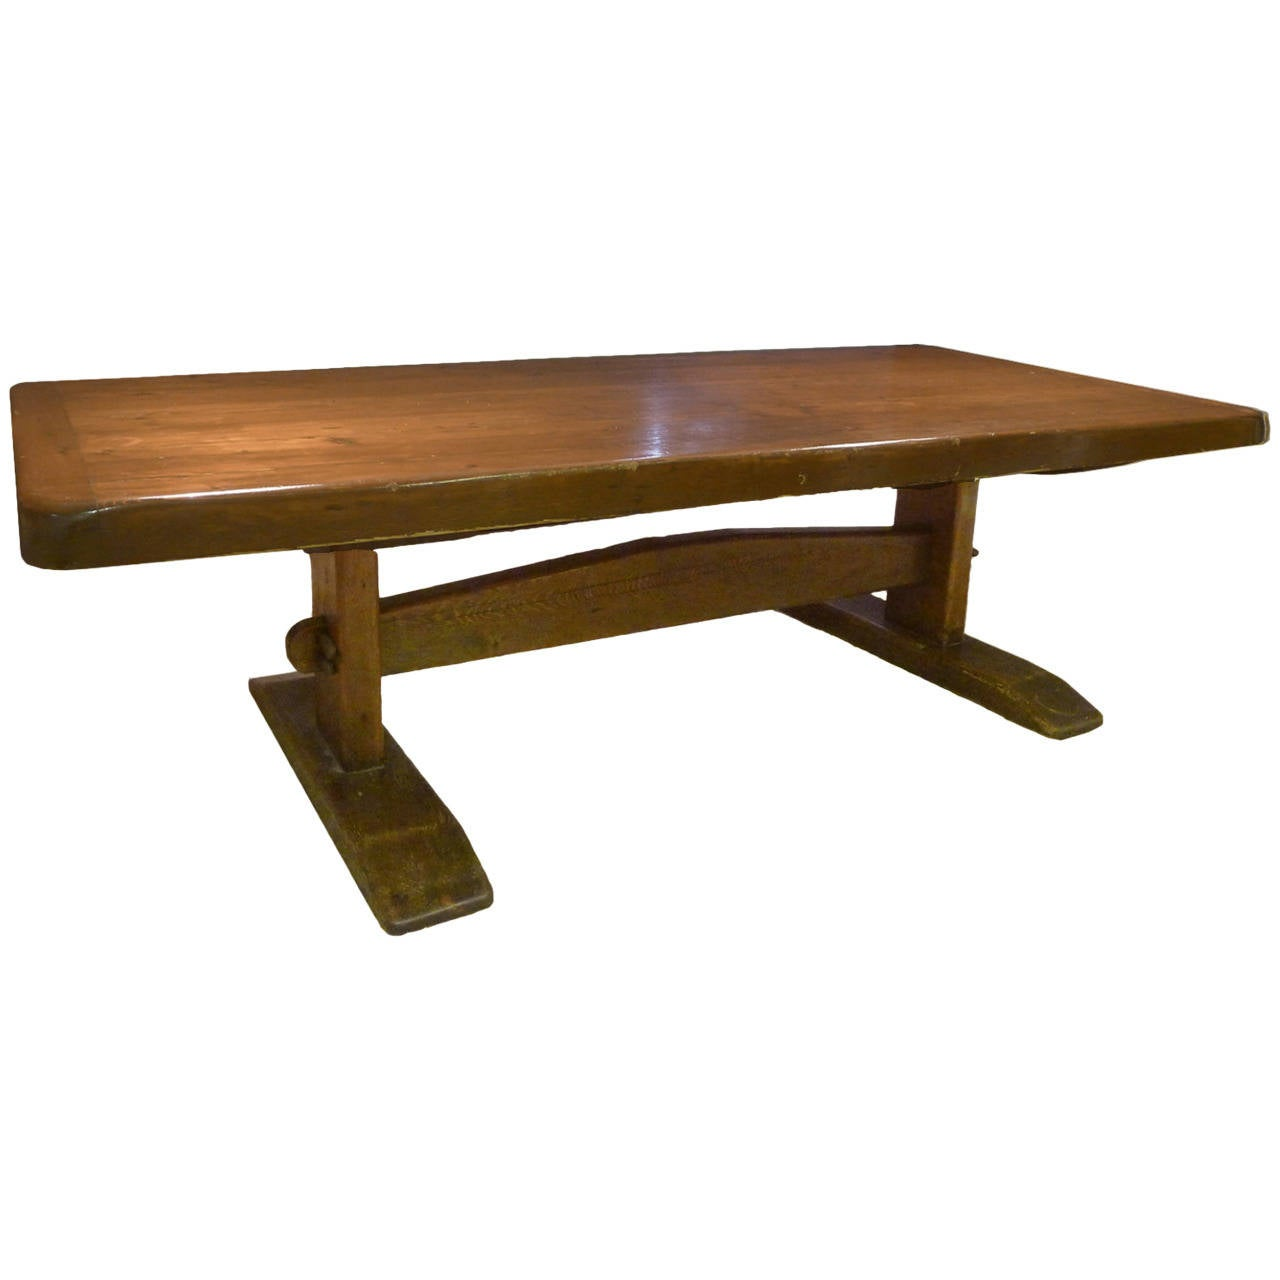 Monumental 8 1/2 Foot Long Early American Solid Pine Trestle Farm Table For  Sale